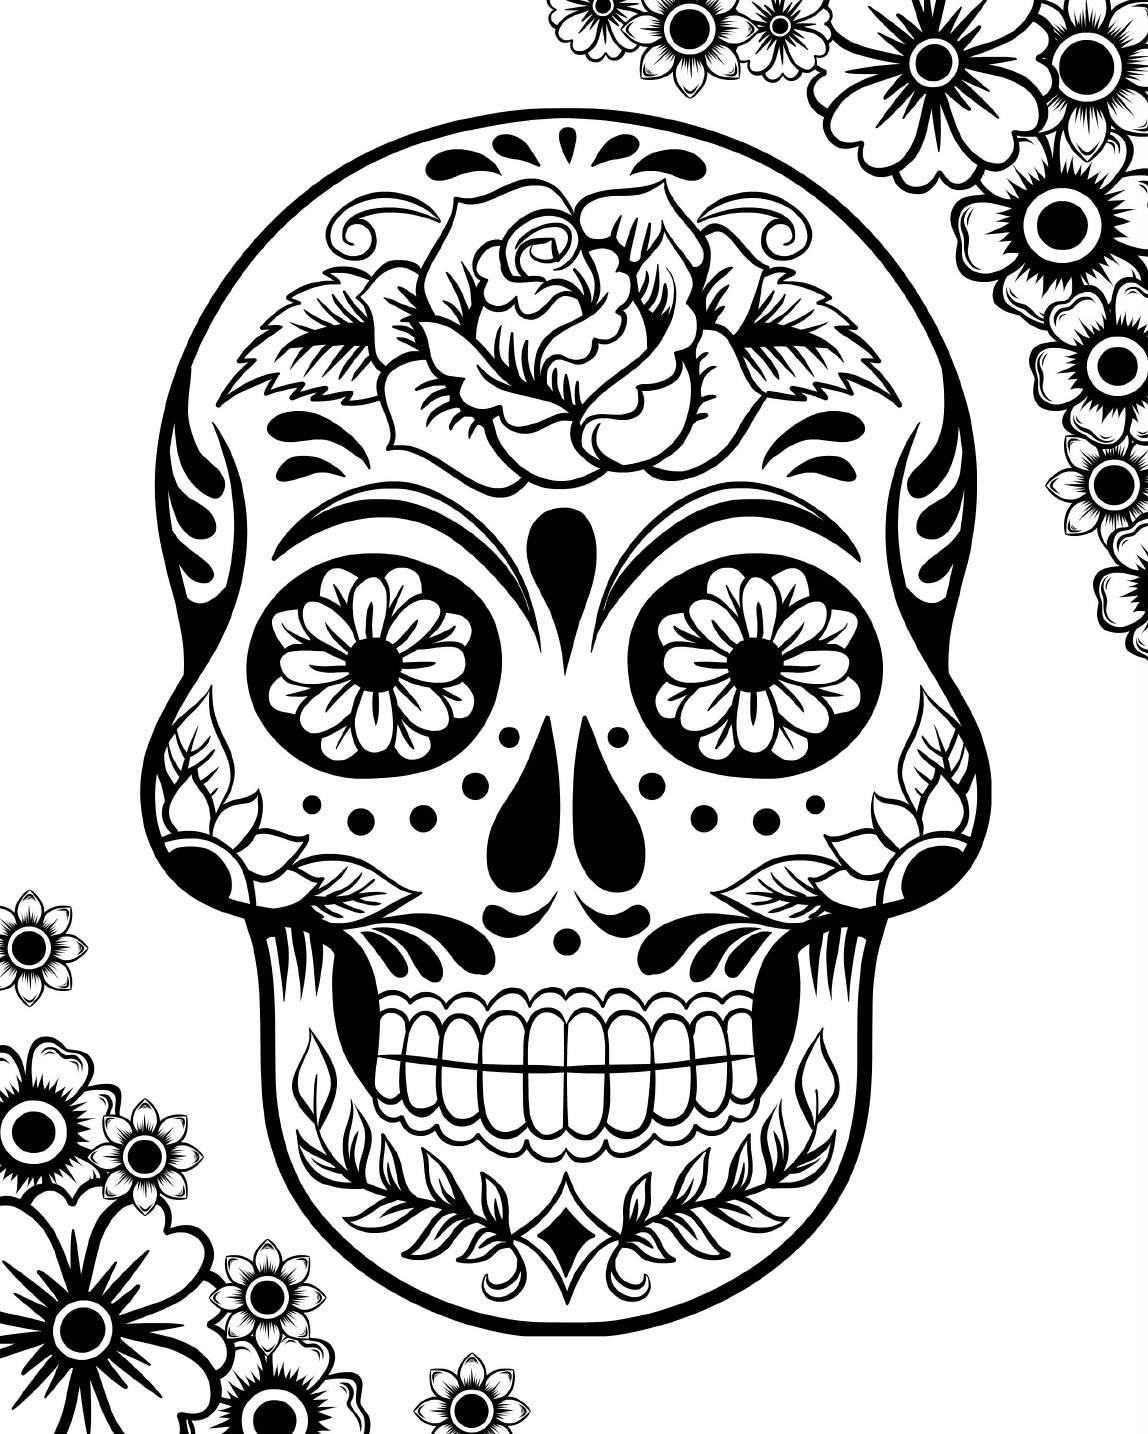 sugar skull coloring page sugar skull coloring pages best coloring pages for kids sugar skull page coloring